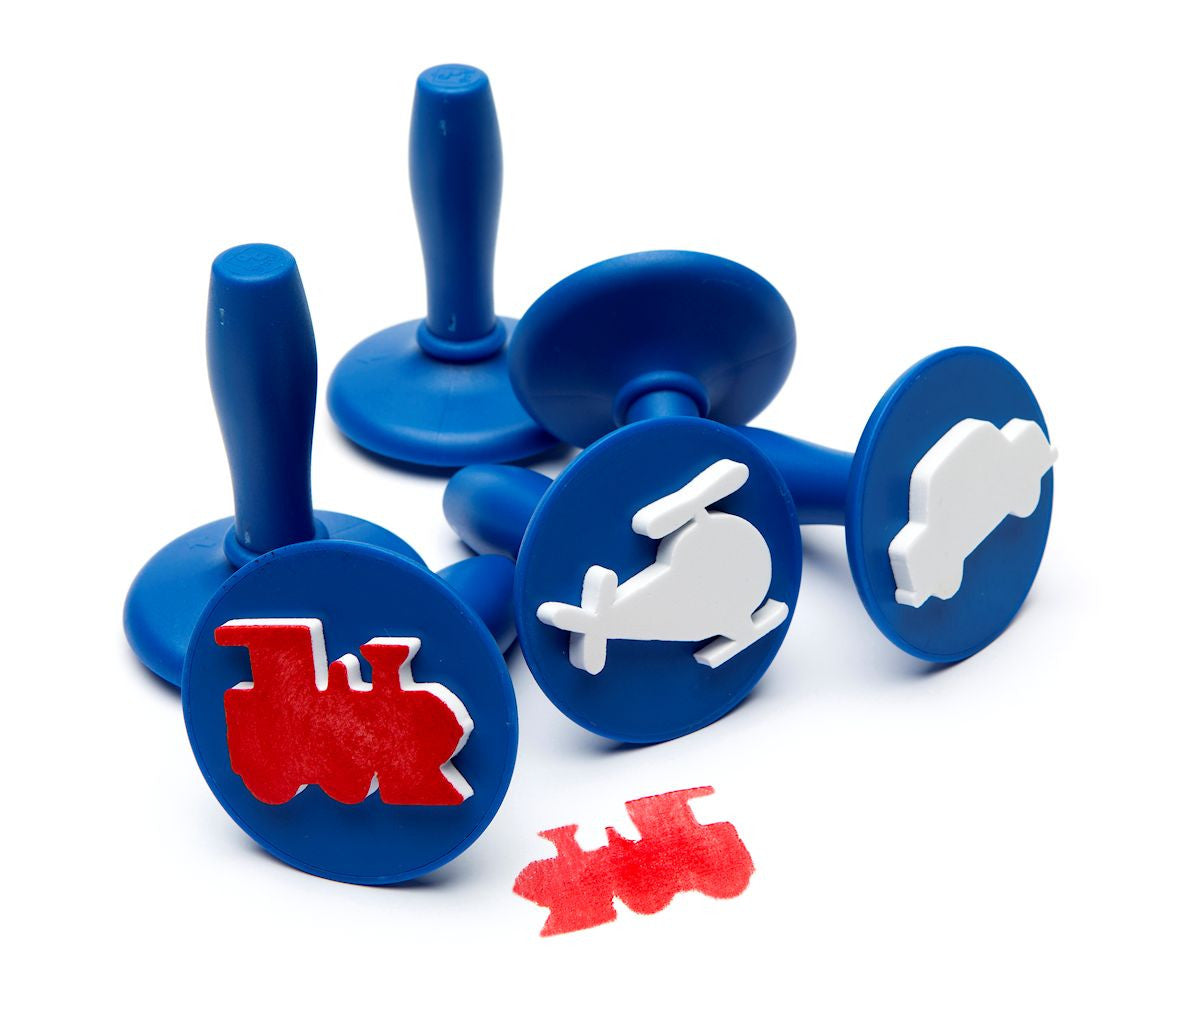 Transport Stampers for Playdough or Paint